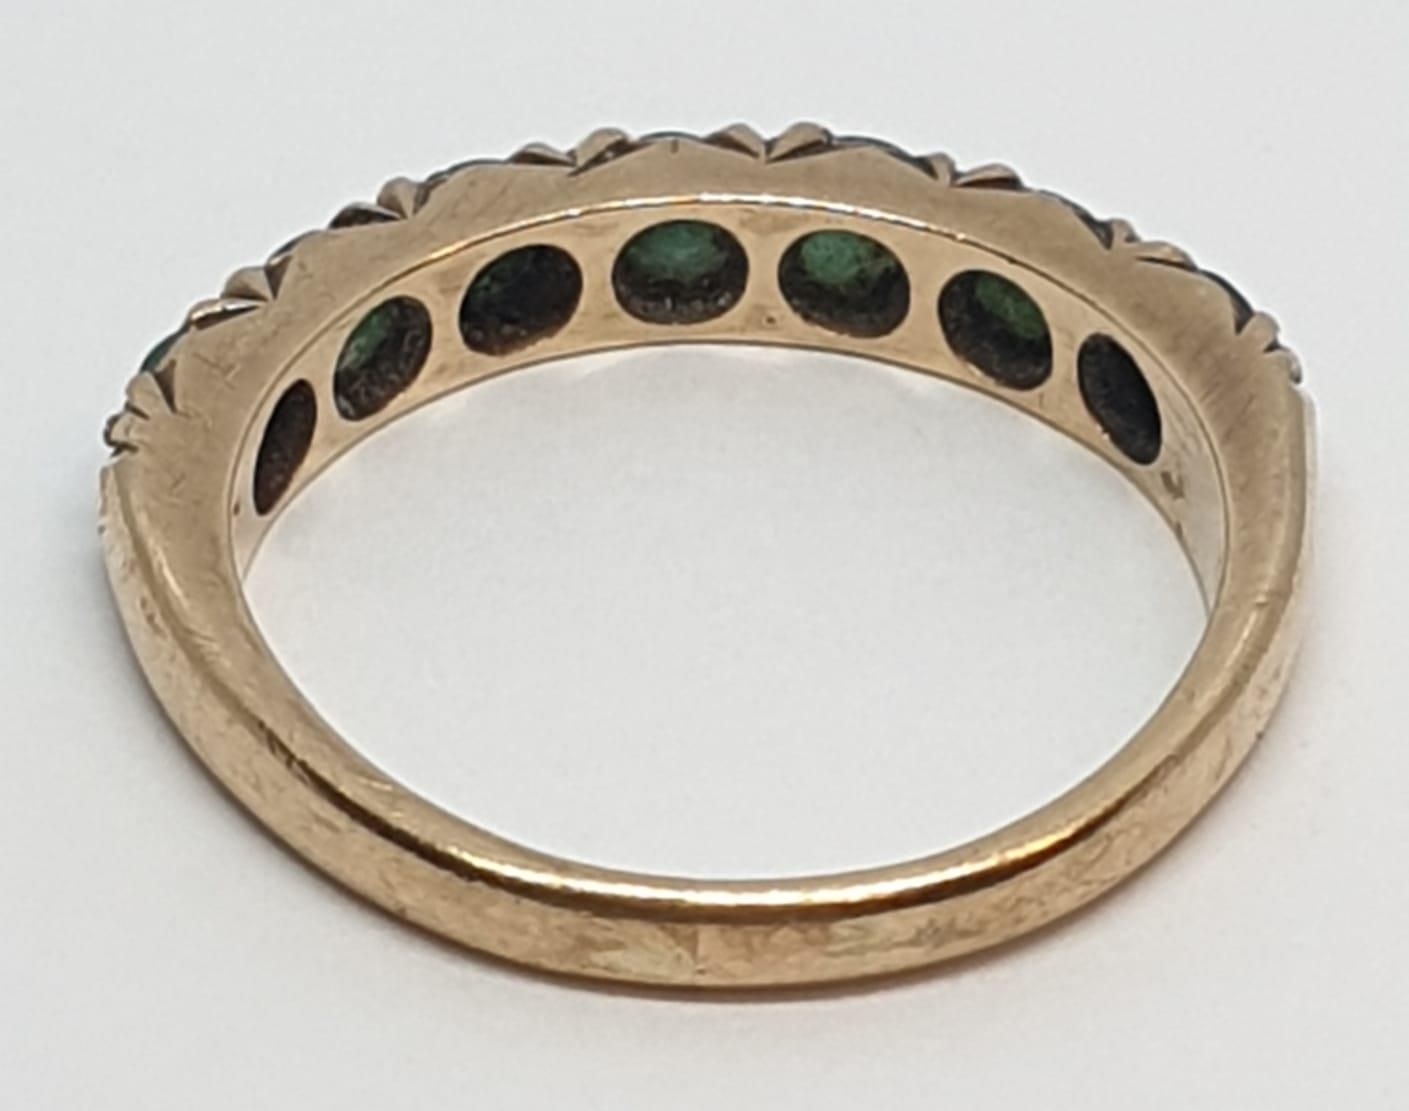 9ct Yellow gold emerald half eternity ring. Weight 2.8g, Size O. - Image 5 of 8